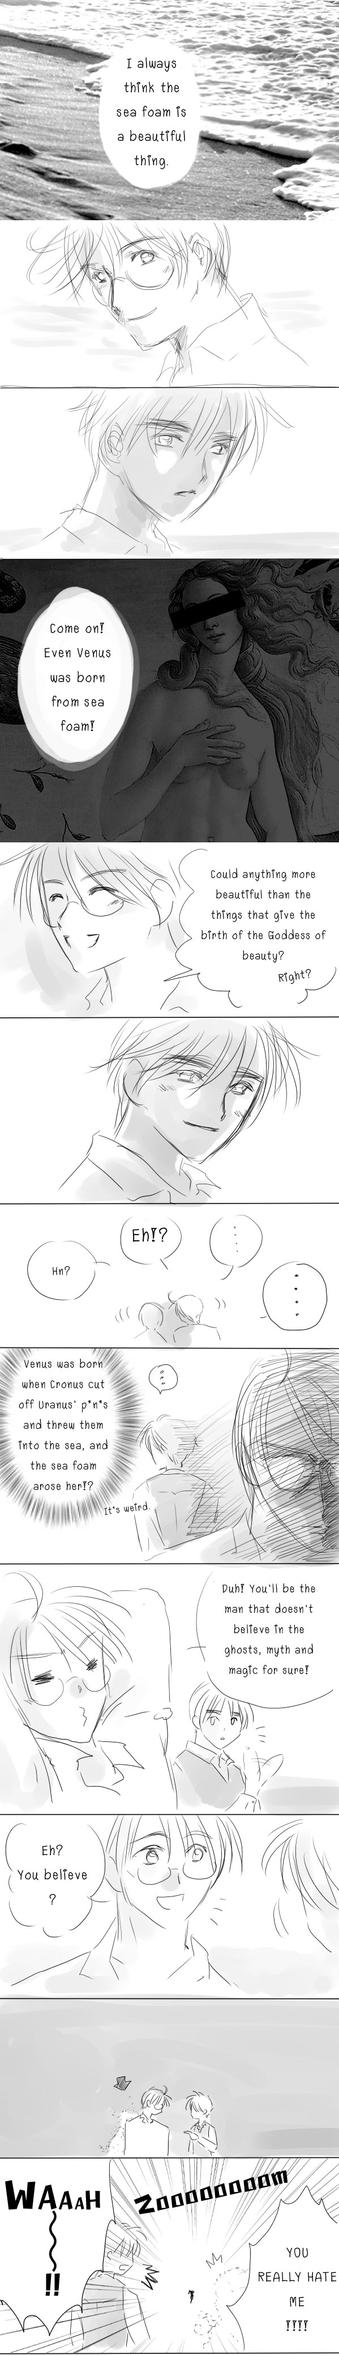 APH-Hetalia Fairy Tale part2 1/3 by ruralrural